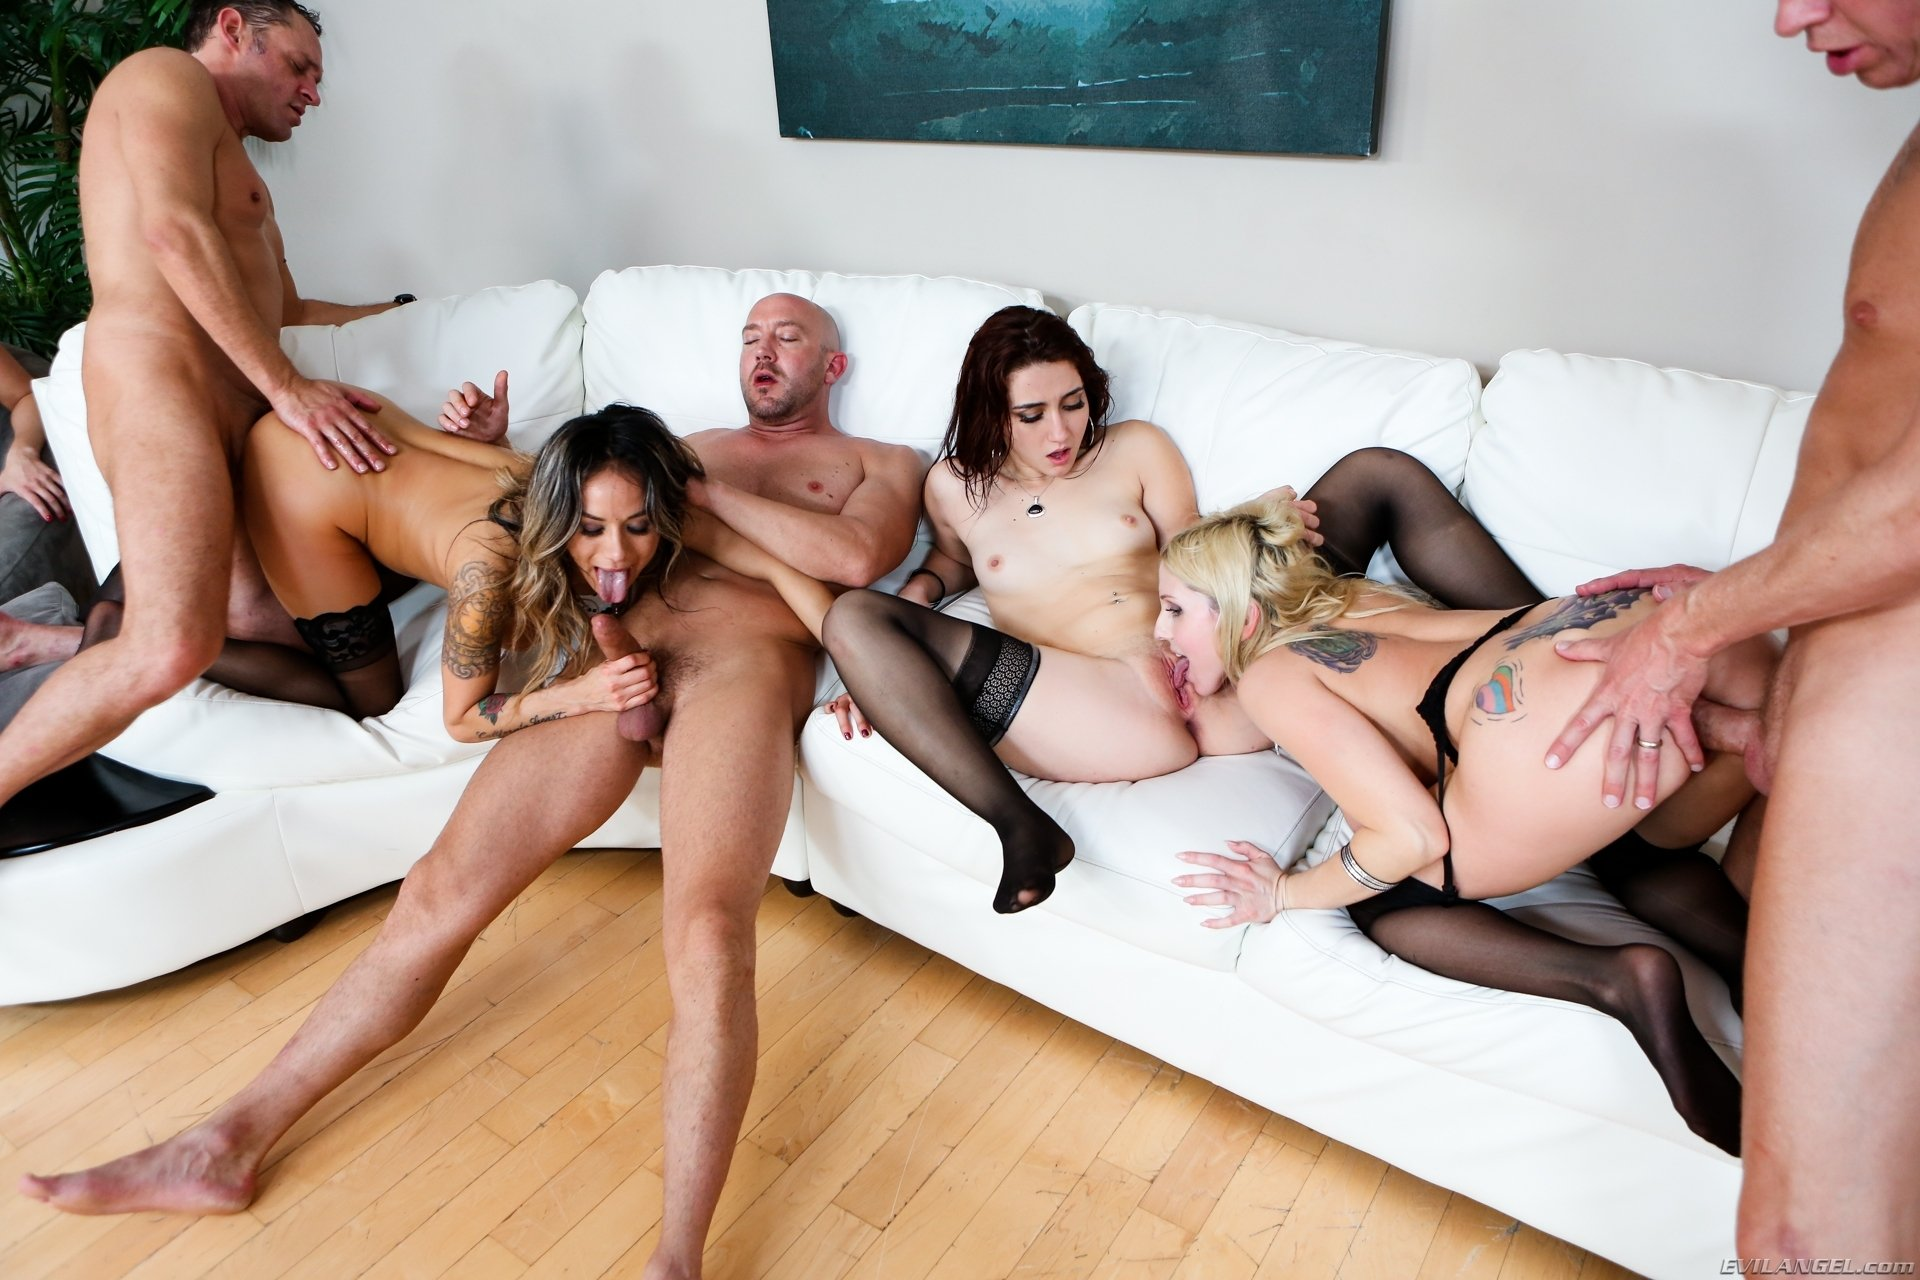 Wife wants husband to call his buddies over to fuvk